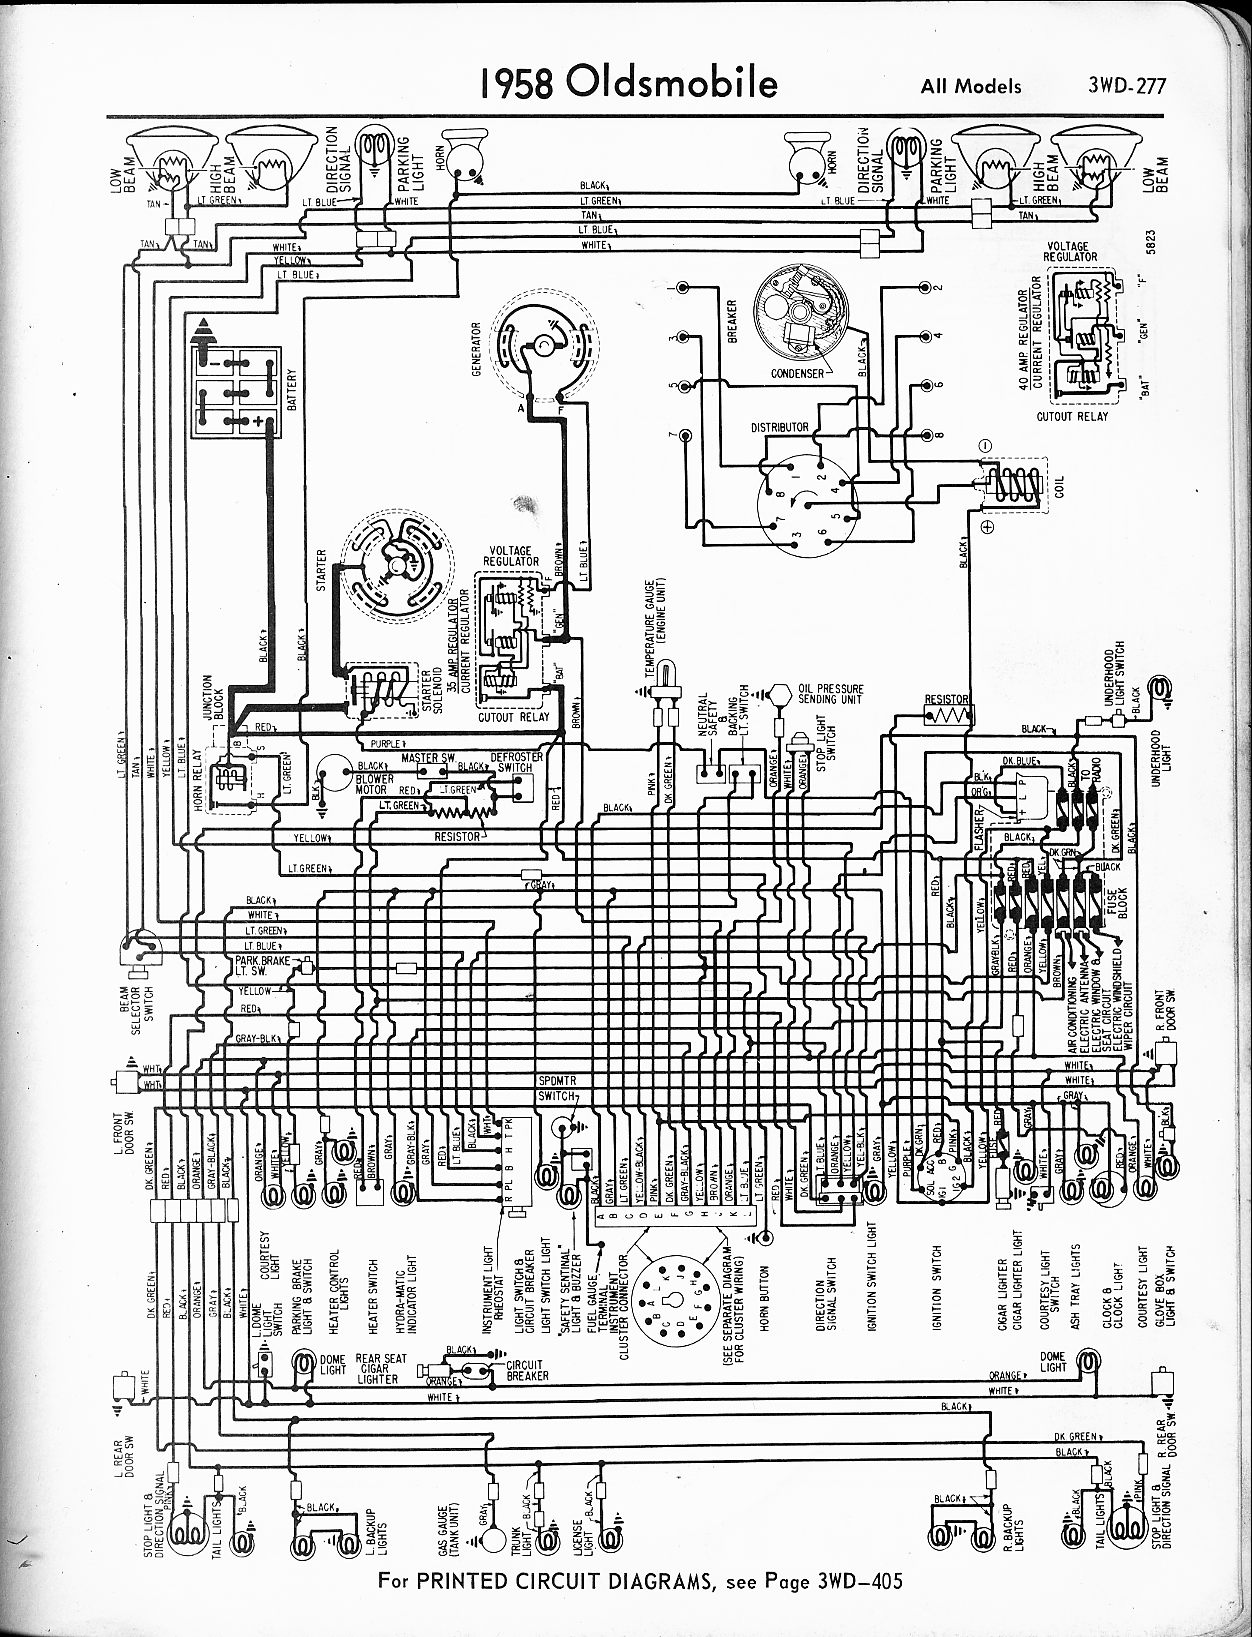 1958 Oldsmobile Ignition Switch Wiring Diagram Will Fuse Layoutcar Page 68 Diagrams The Old Car Manual Project Rh Oldcarmanualproject Com Universal